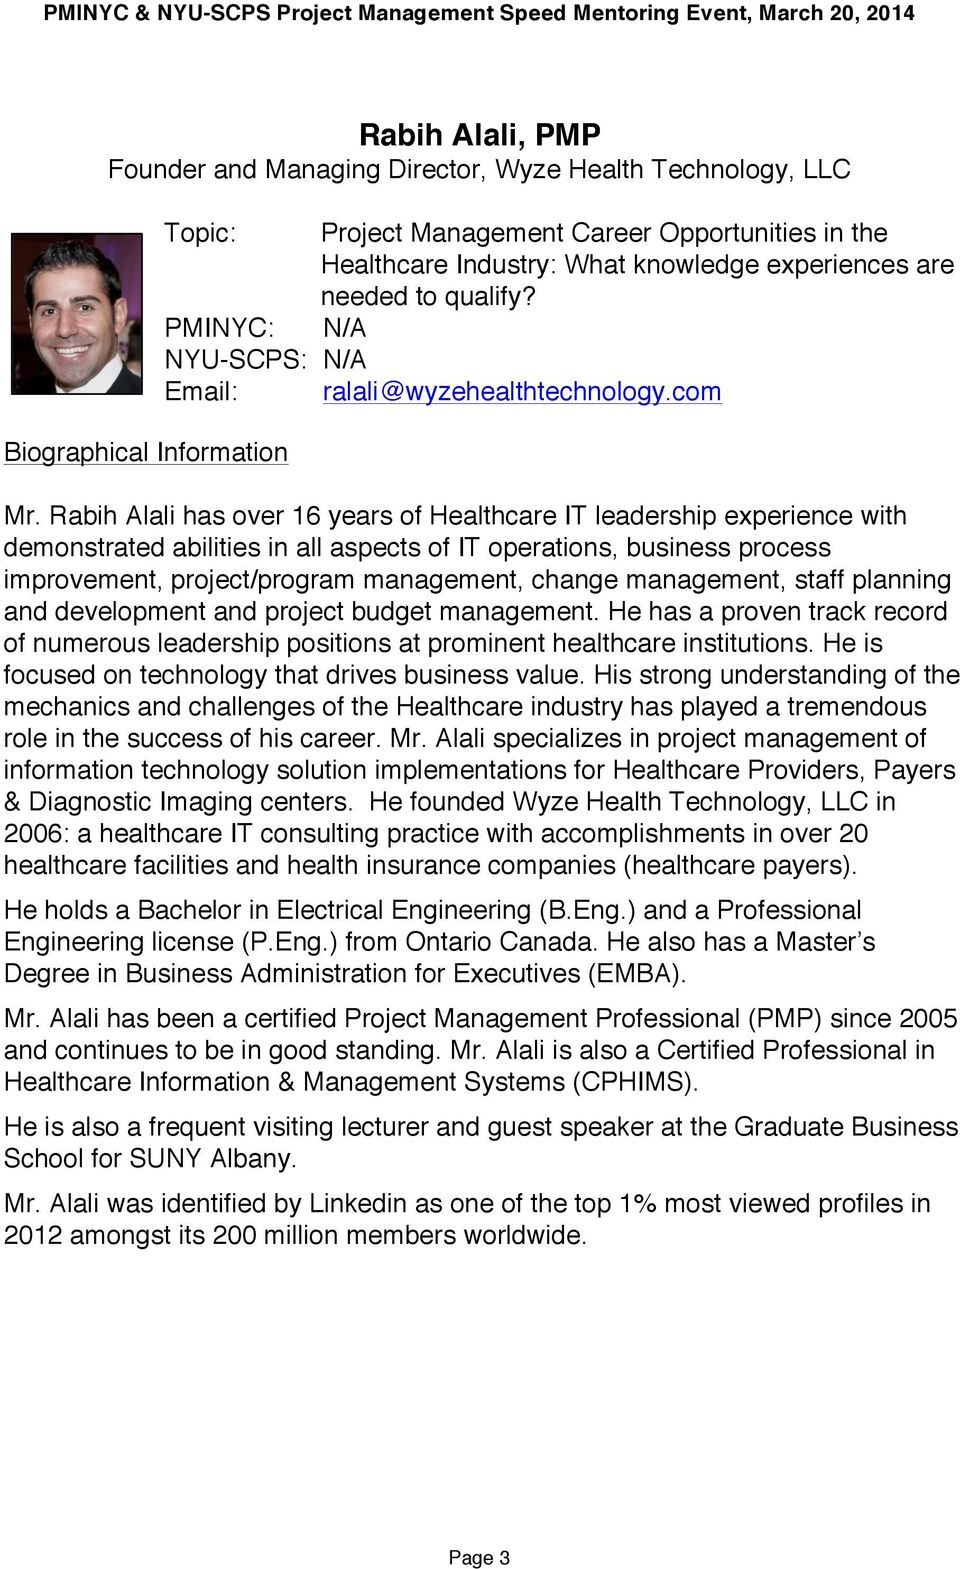 Rabih Alali has over 16 years of Healthcare IT leadership experience with demonstrated abilities in all aspects of IT operations, business process improvement, project/program management, change